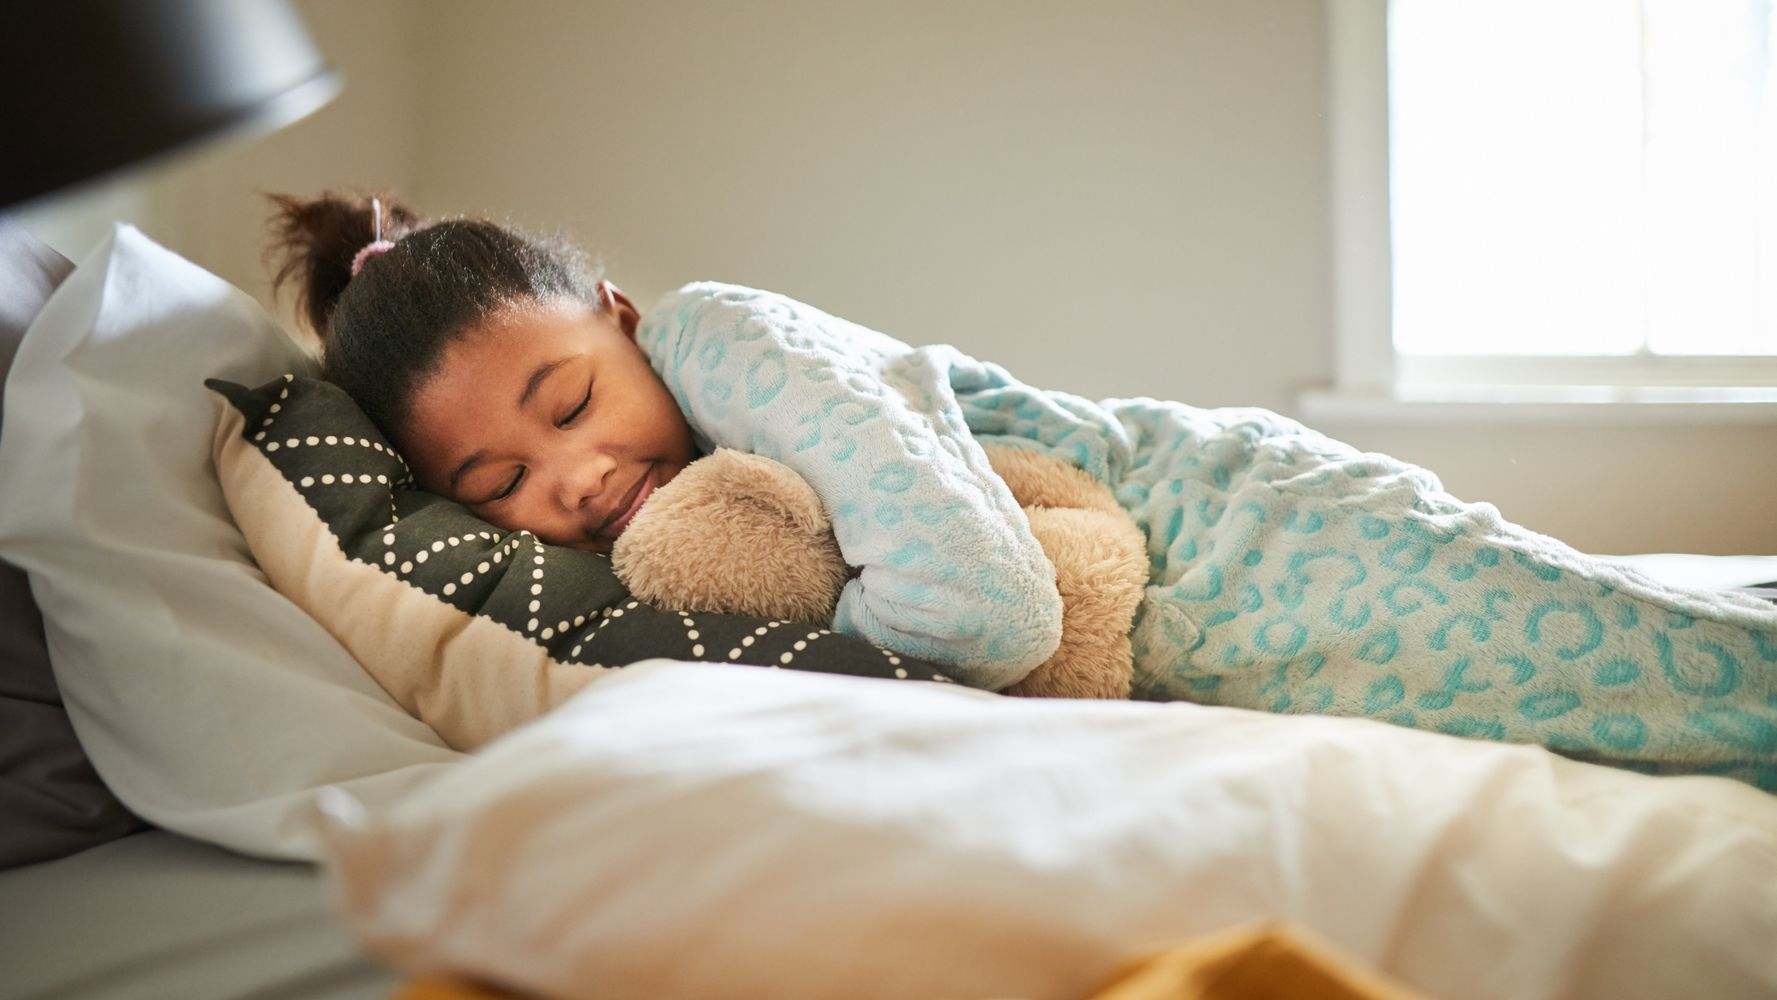 New Study Suggests Parents Should Take Kids' Snoring Seriously